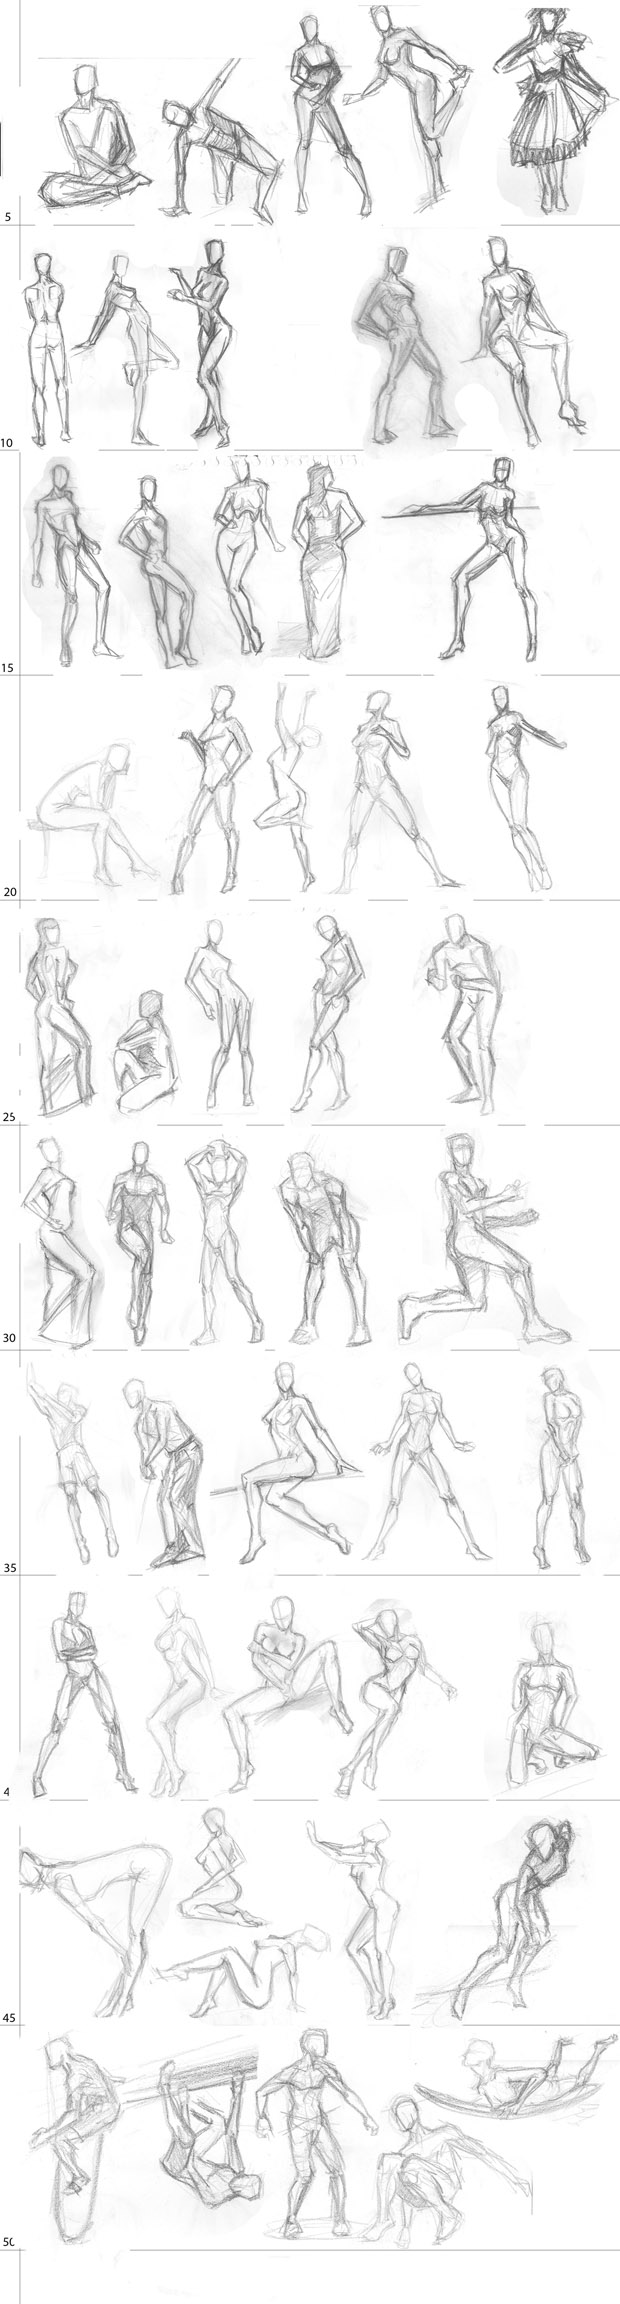 "Spartan Camp #25 - 50 gestures + Optional Study of ""Sitting"""